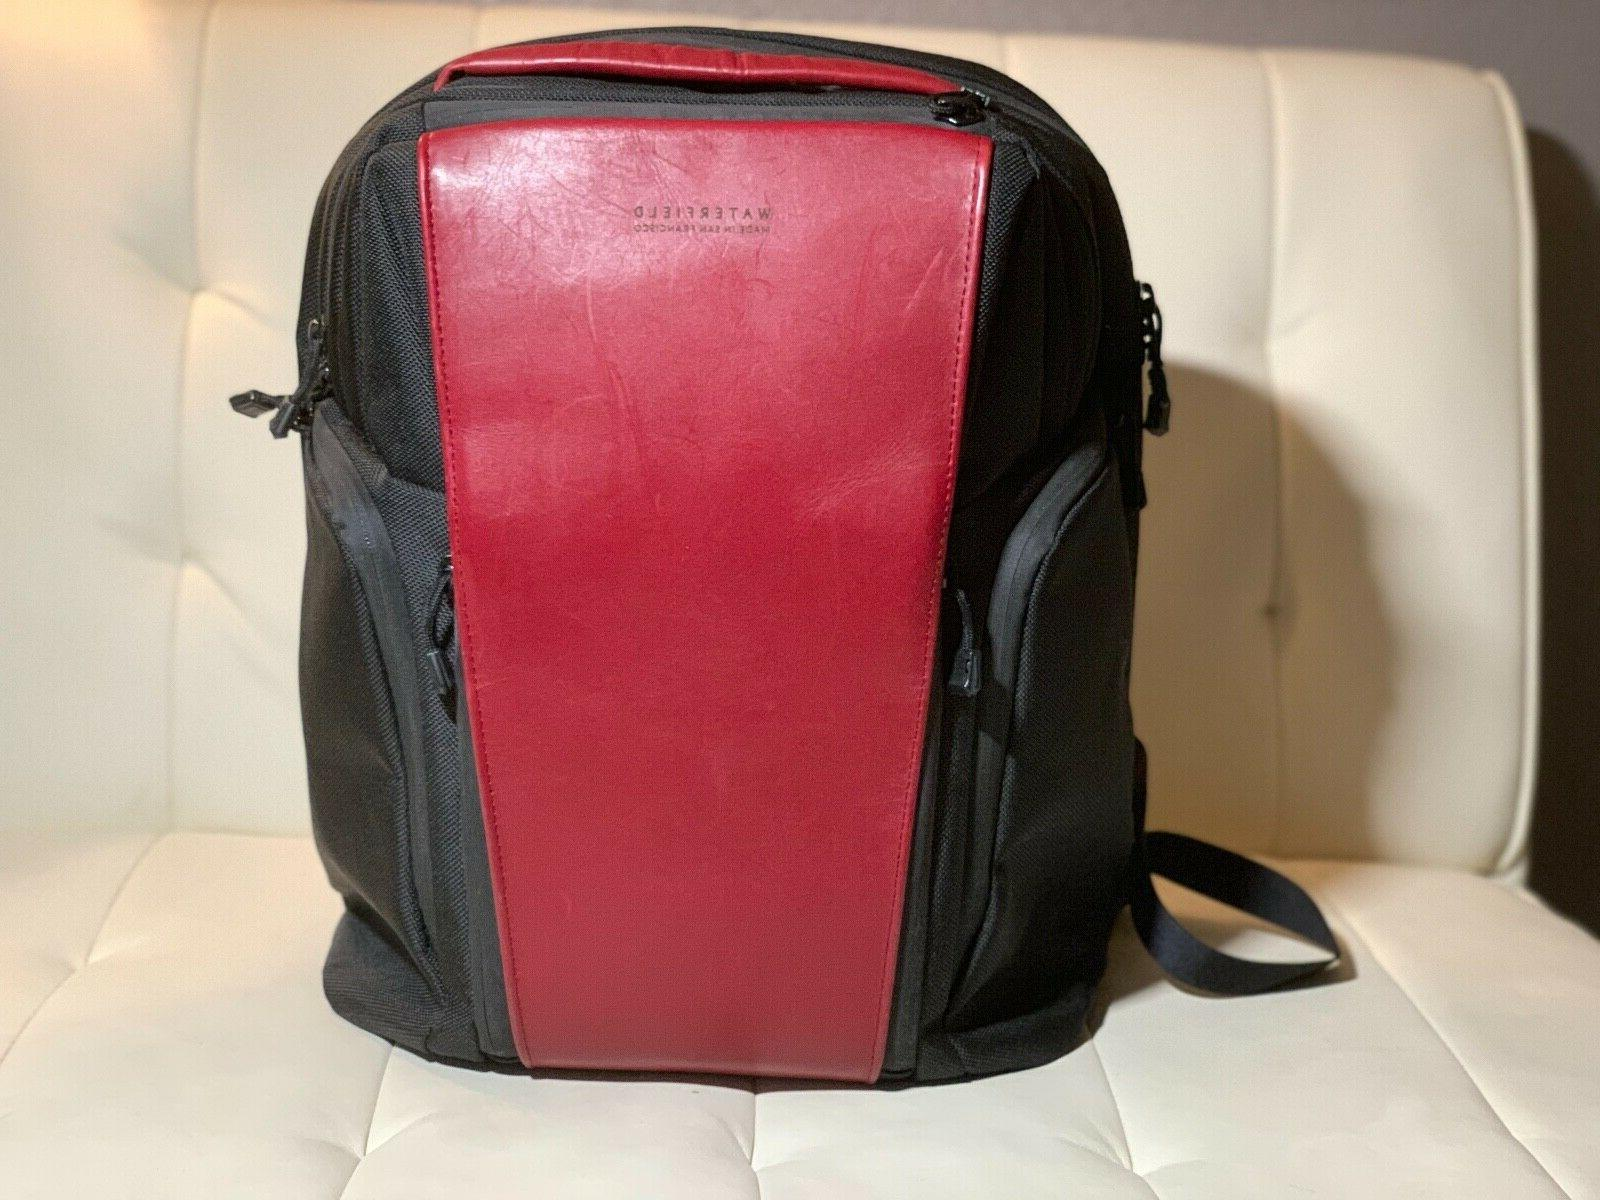 WaterfieldPRO EXECUTIVE BACKPACK Nylon with Crimson Leather Accent